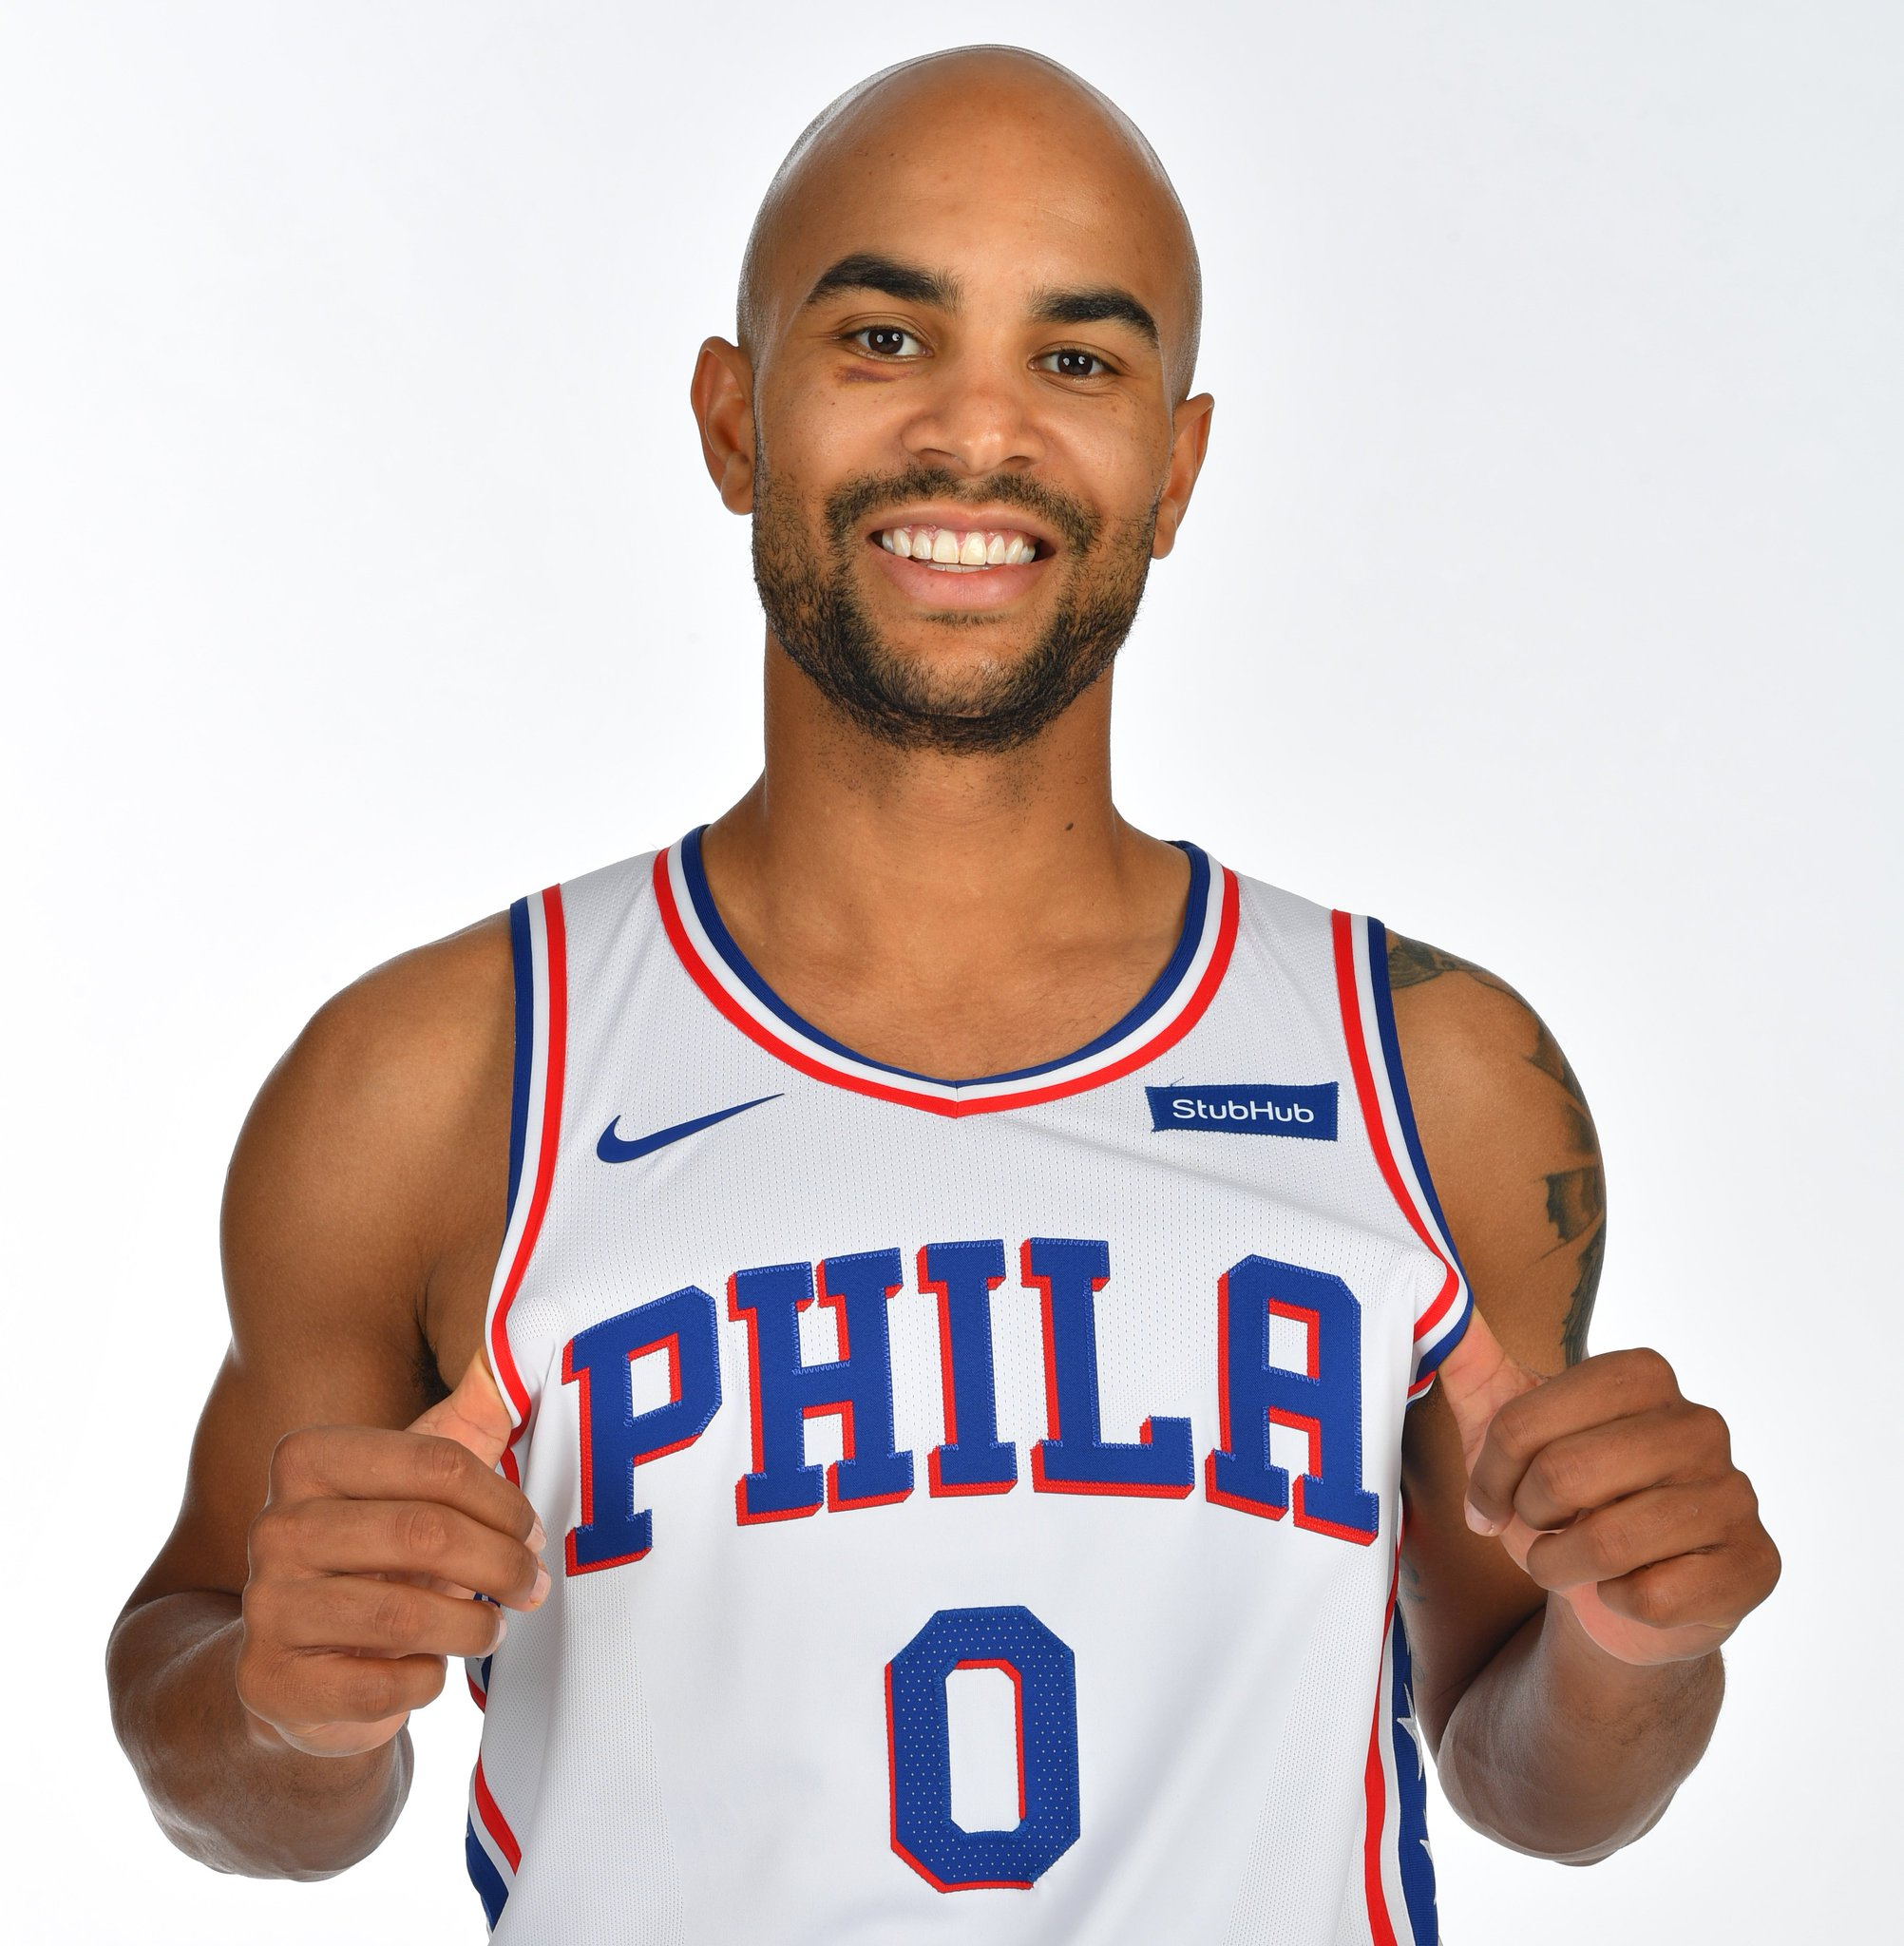 Join us in wishing @jerrydbayless of the @sixers a HAPPY 30th BIRTHDAY! #NBABDAY https://t.co/Y7rS3F5ZYJ